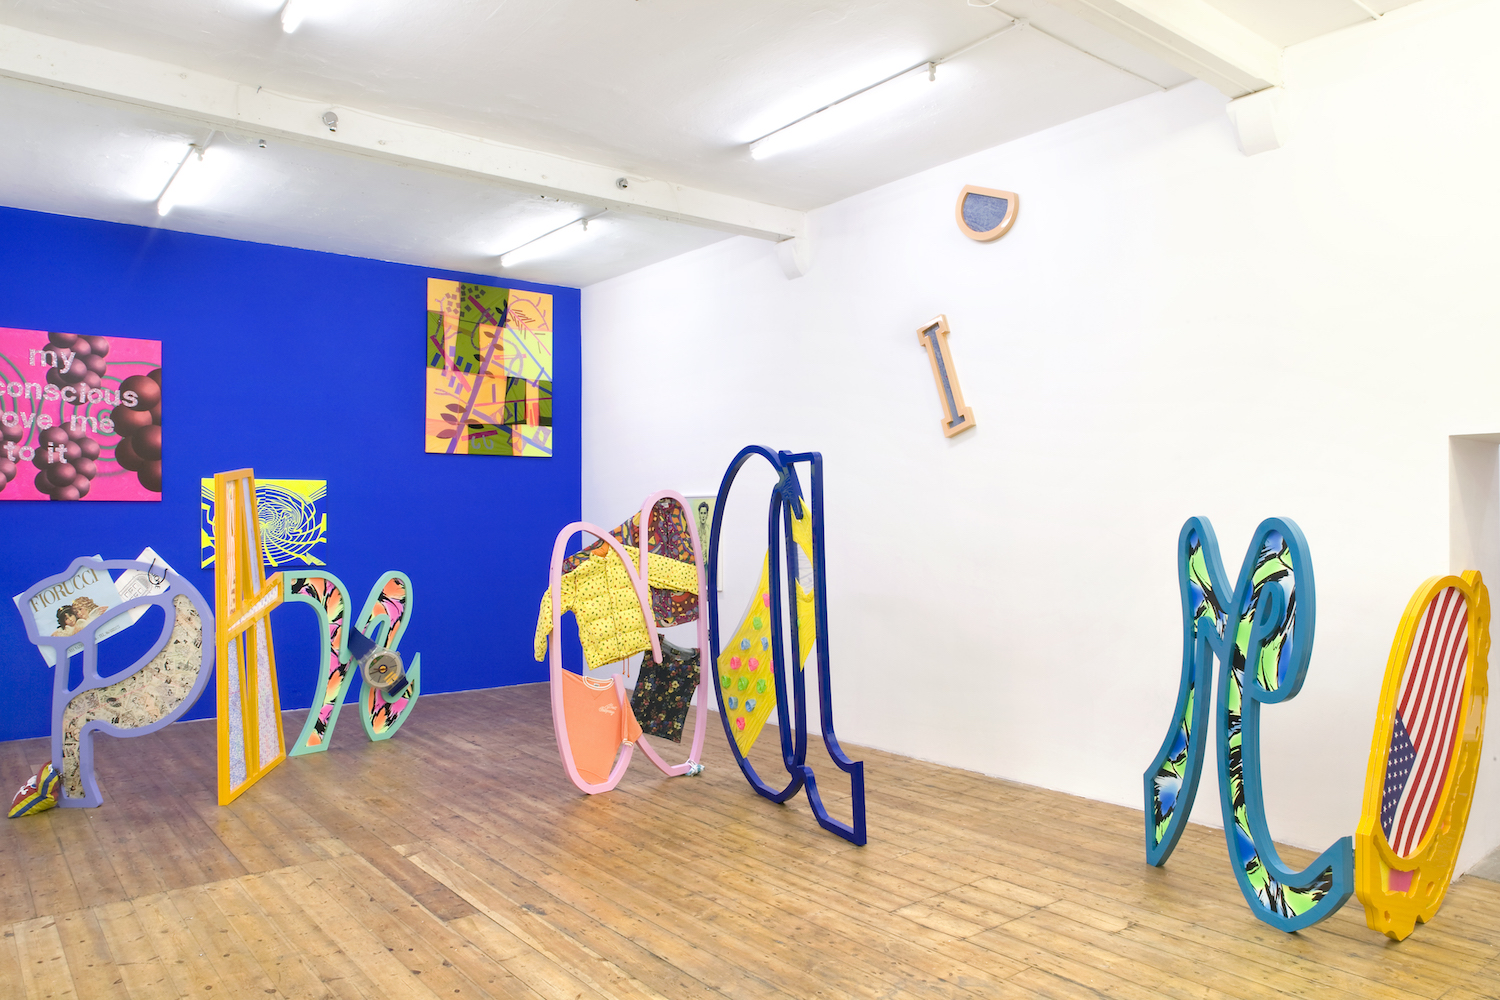 Ludovica Gioscia, Apocalypstick, 2011. Installation view. Nunnery, London, UK. Photographer: Michele Panzeri.